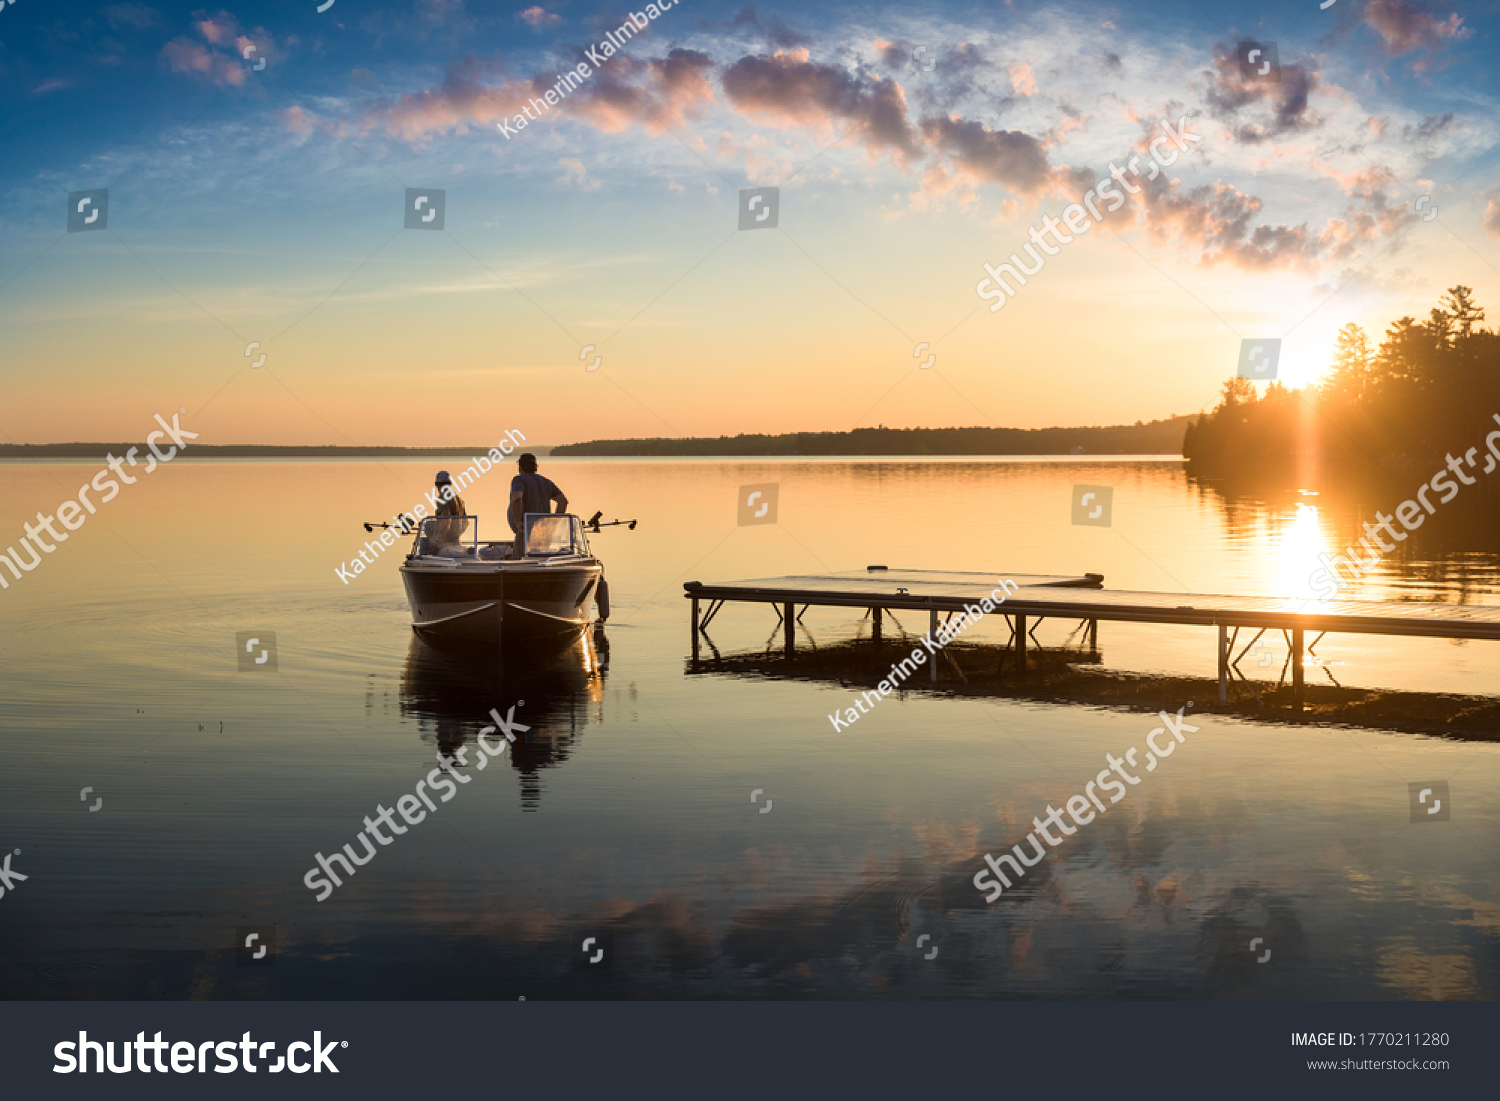 Cottage Life - Father and son fishing on a boat at sunrise/sunset at the peaceful cottage in Kawartha Lakes Ontario Canada on Balsam Lake #1770211280